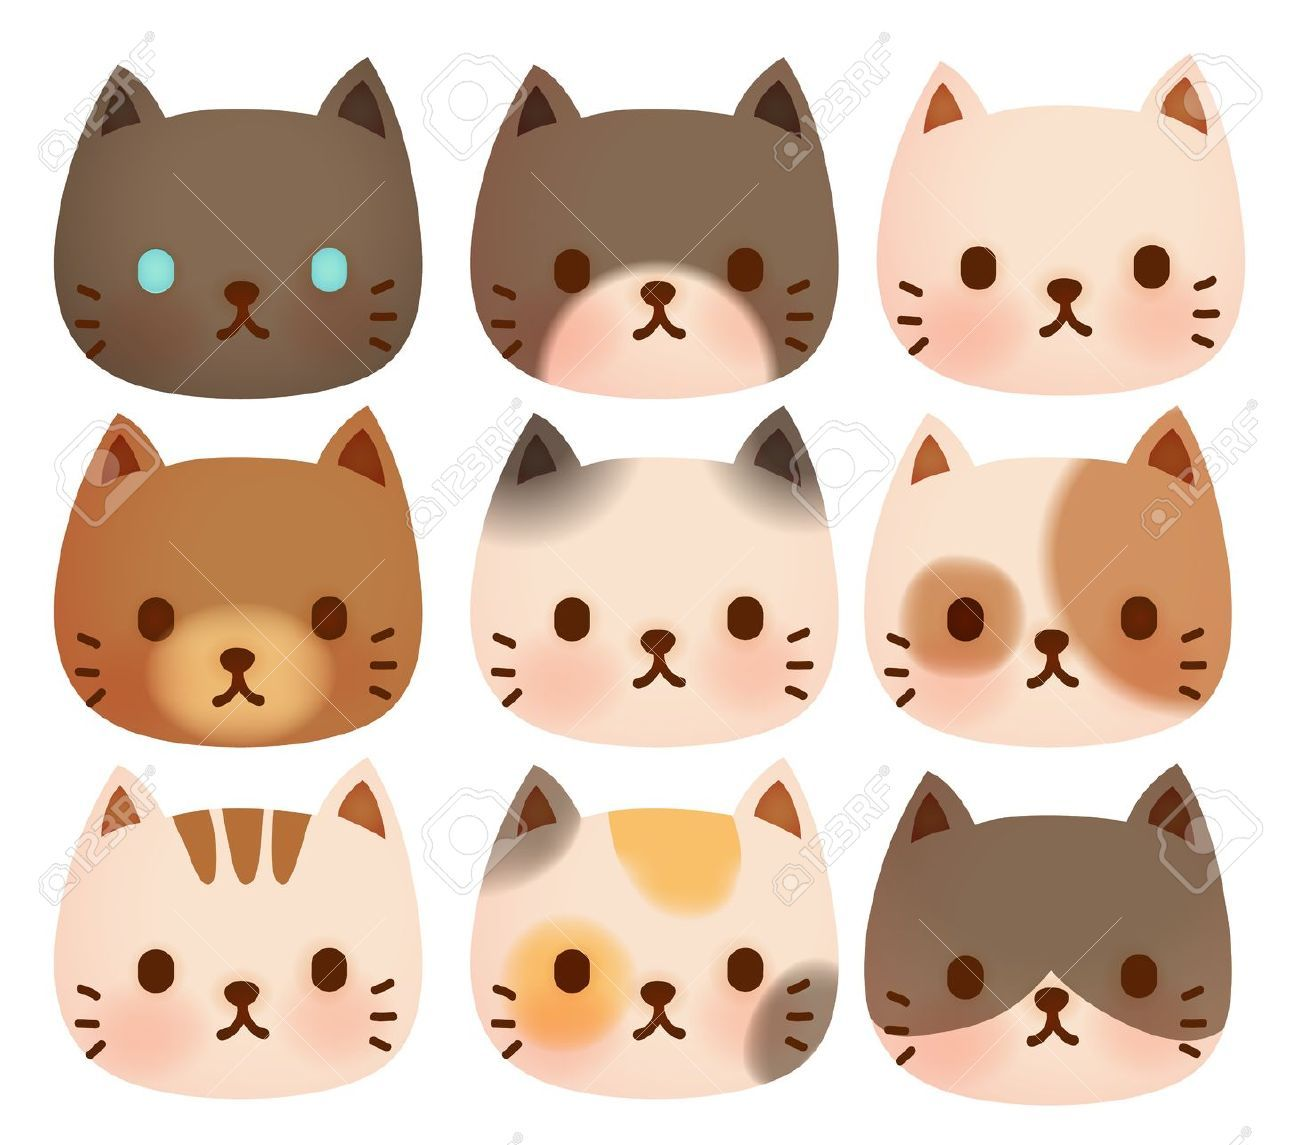 Cat Face Stock Vector Illustration And Royalty Free Cat Face Clipart Cat Face Drawing Cute Cat Face Cats Illustration